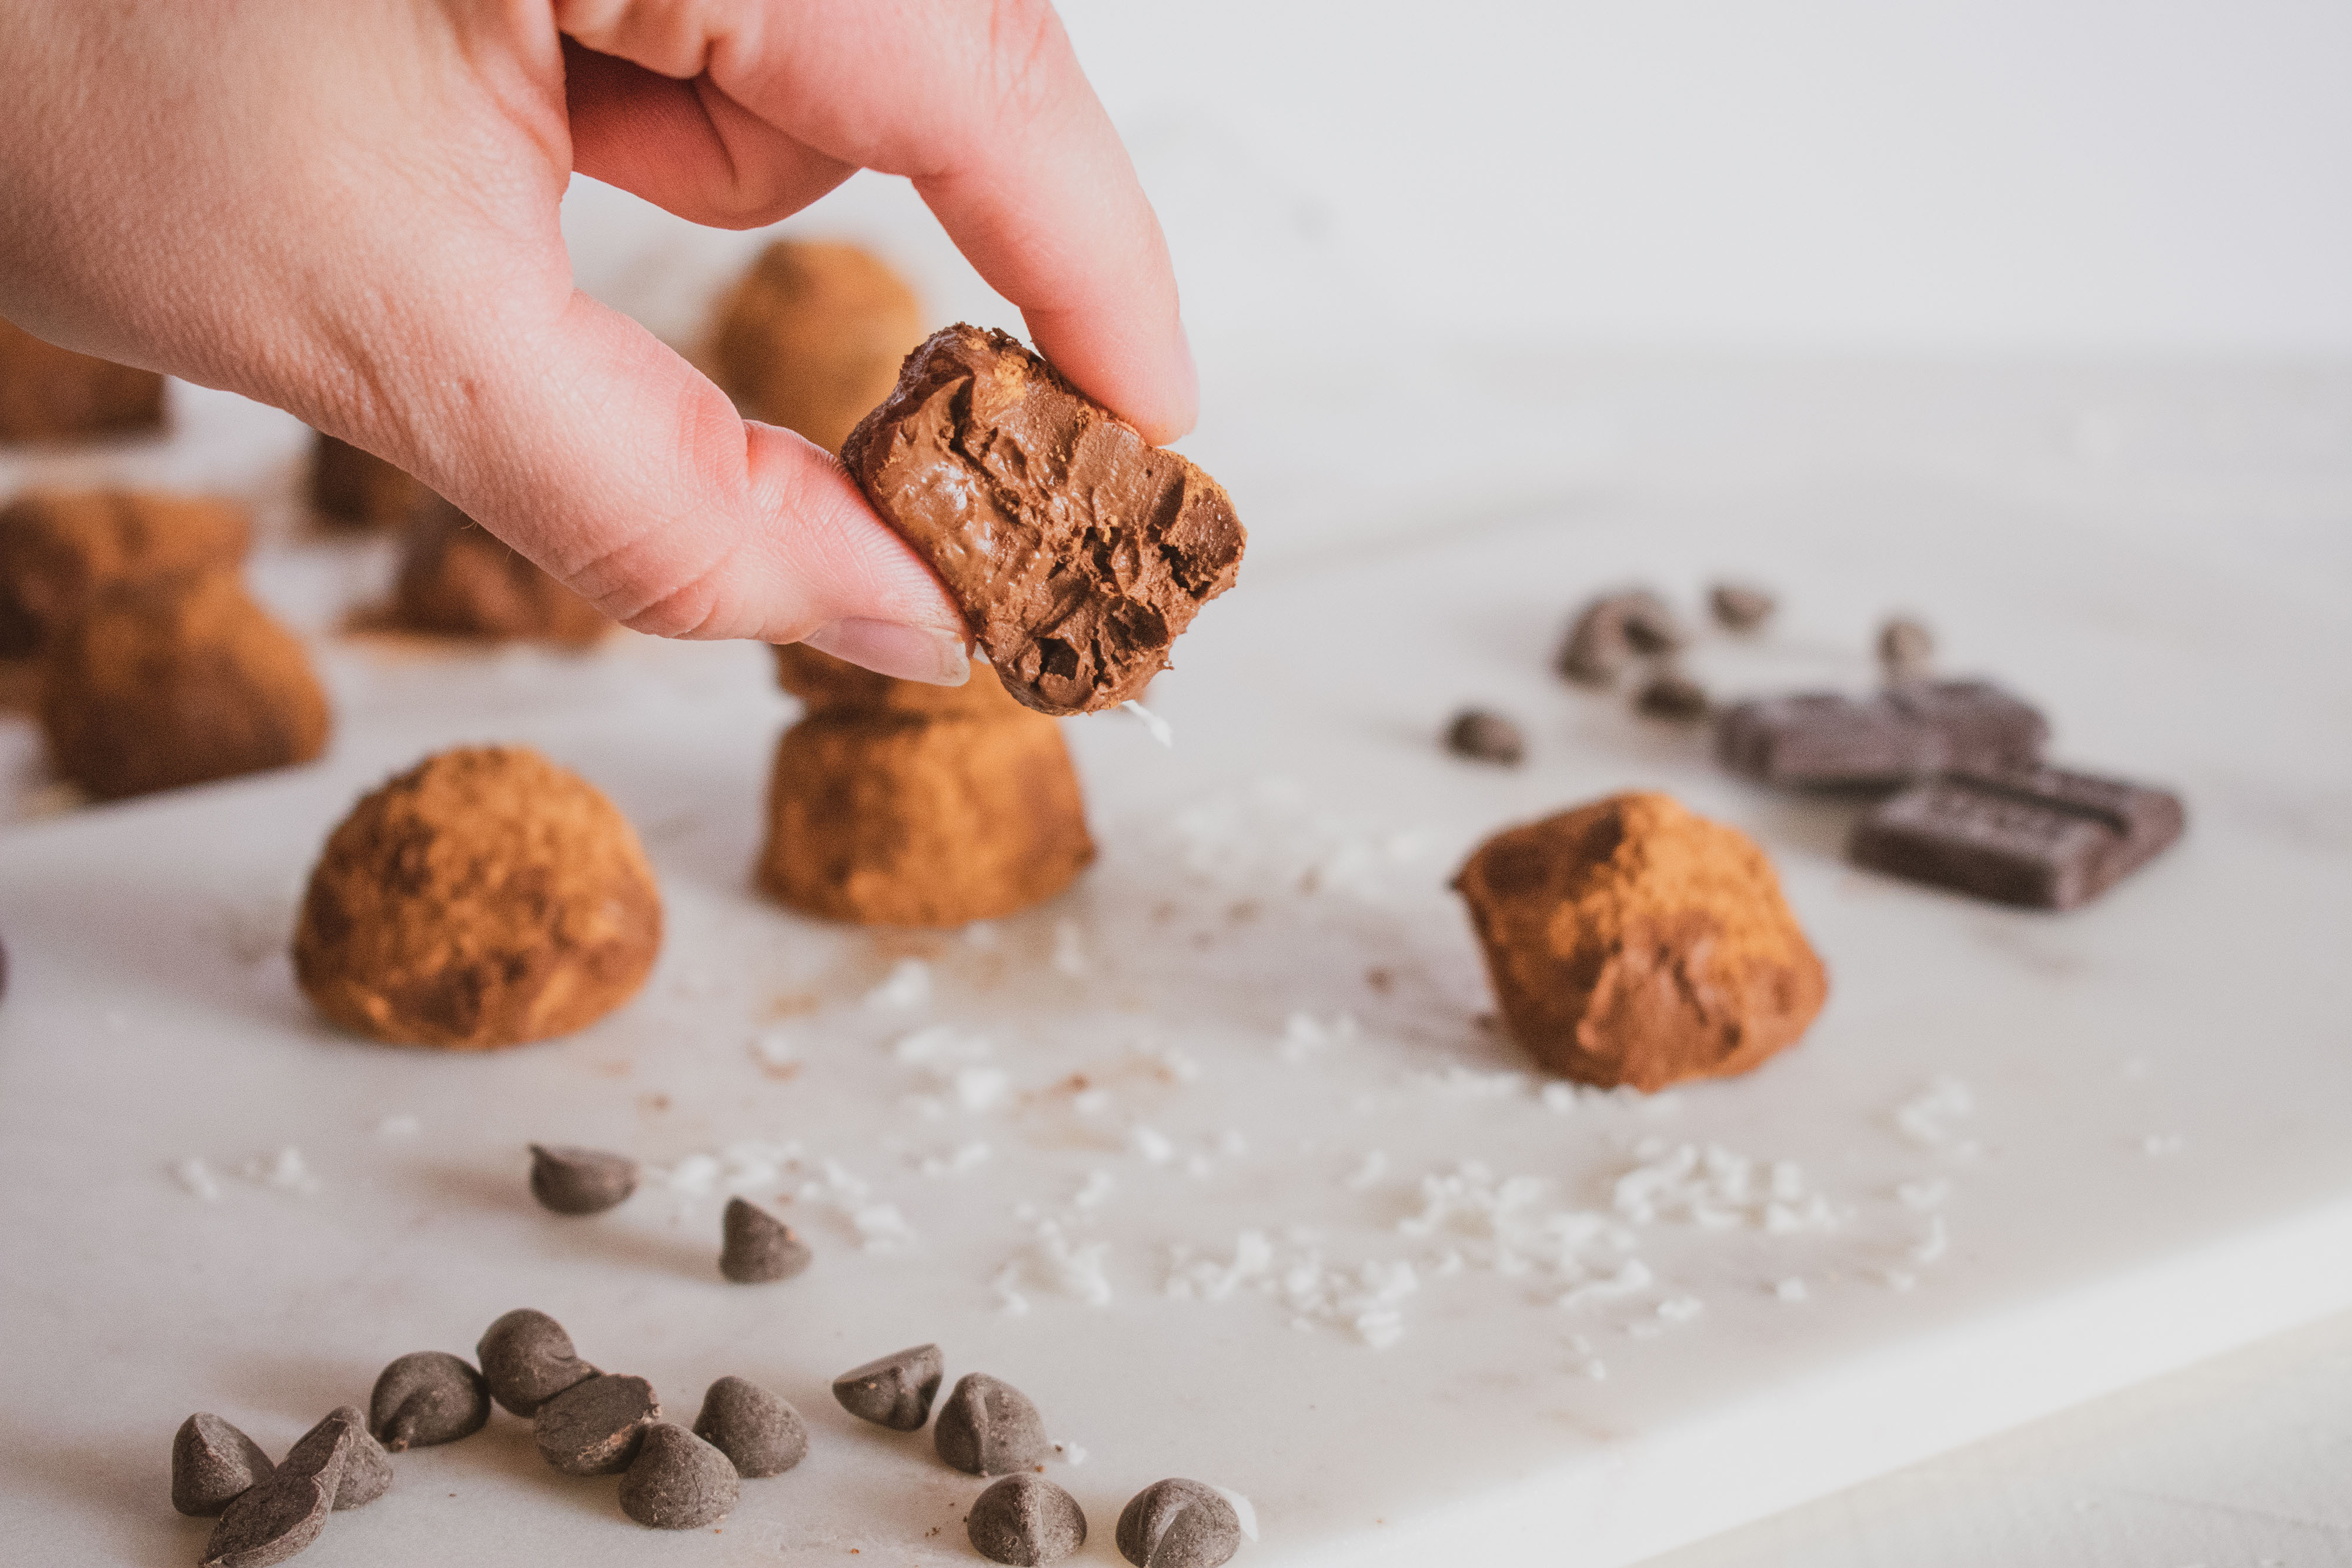 Cocoa powder covered keto chocolate truffles. Set on a white surface with chocolate chips and with a bite taken out.